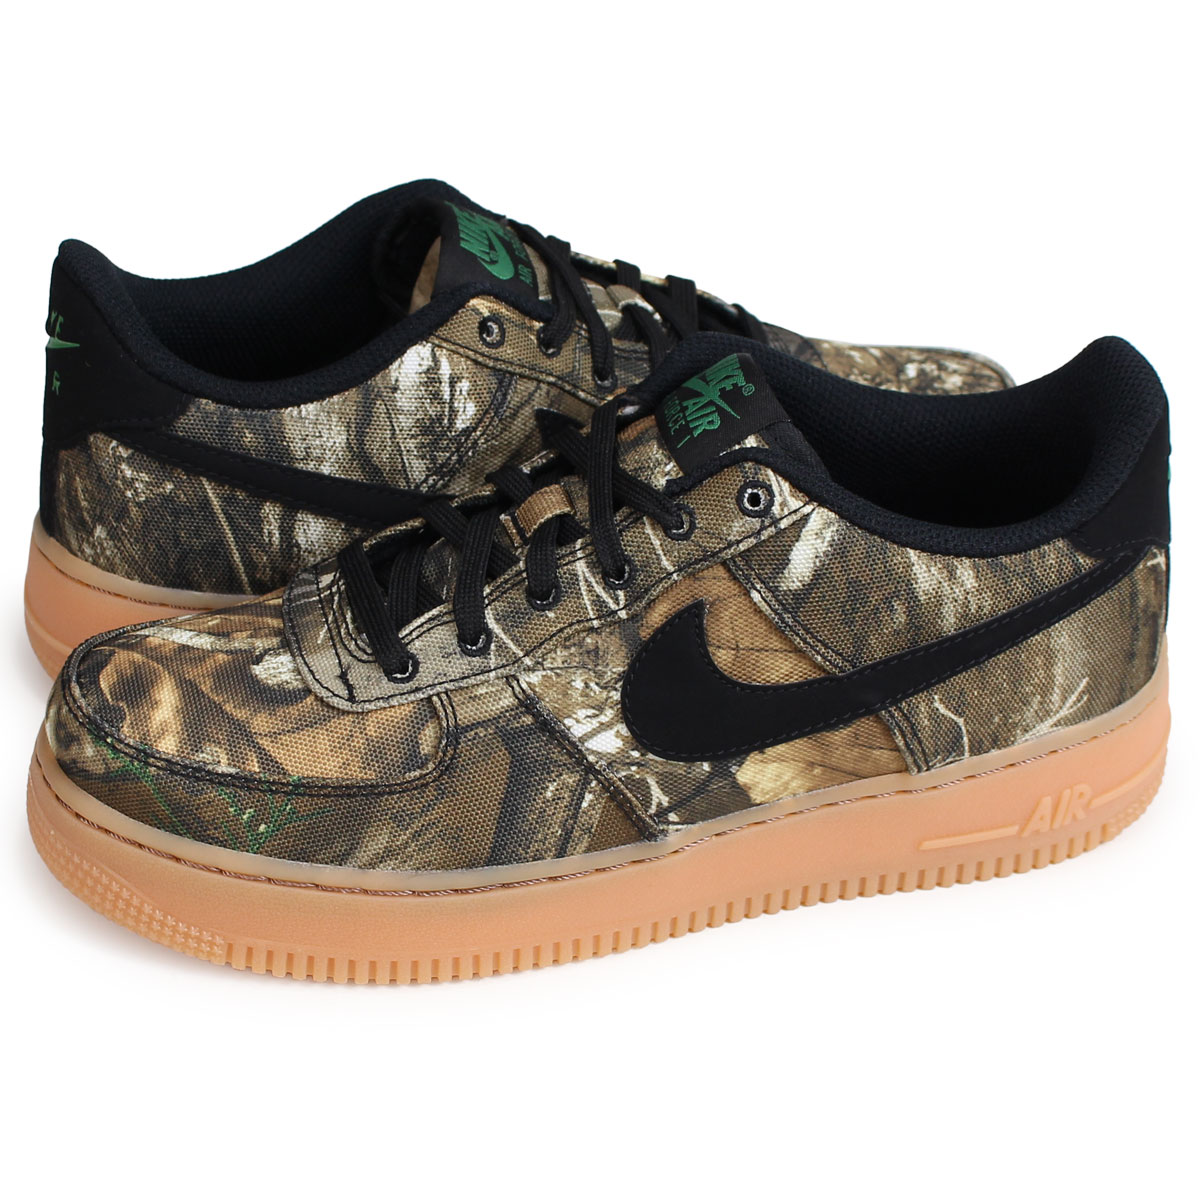 Nike NIKE air force 1 sneakers Lady s AIR FORCE 1 LV8 3 GS Realtree  collaboration duck AV0749-001  load planned Shinnyu load in reservation  product 1 30 ... 163fba35c